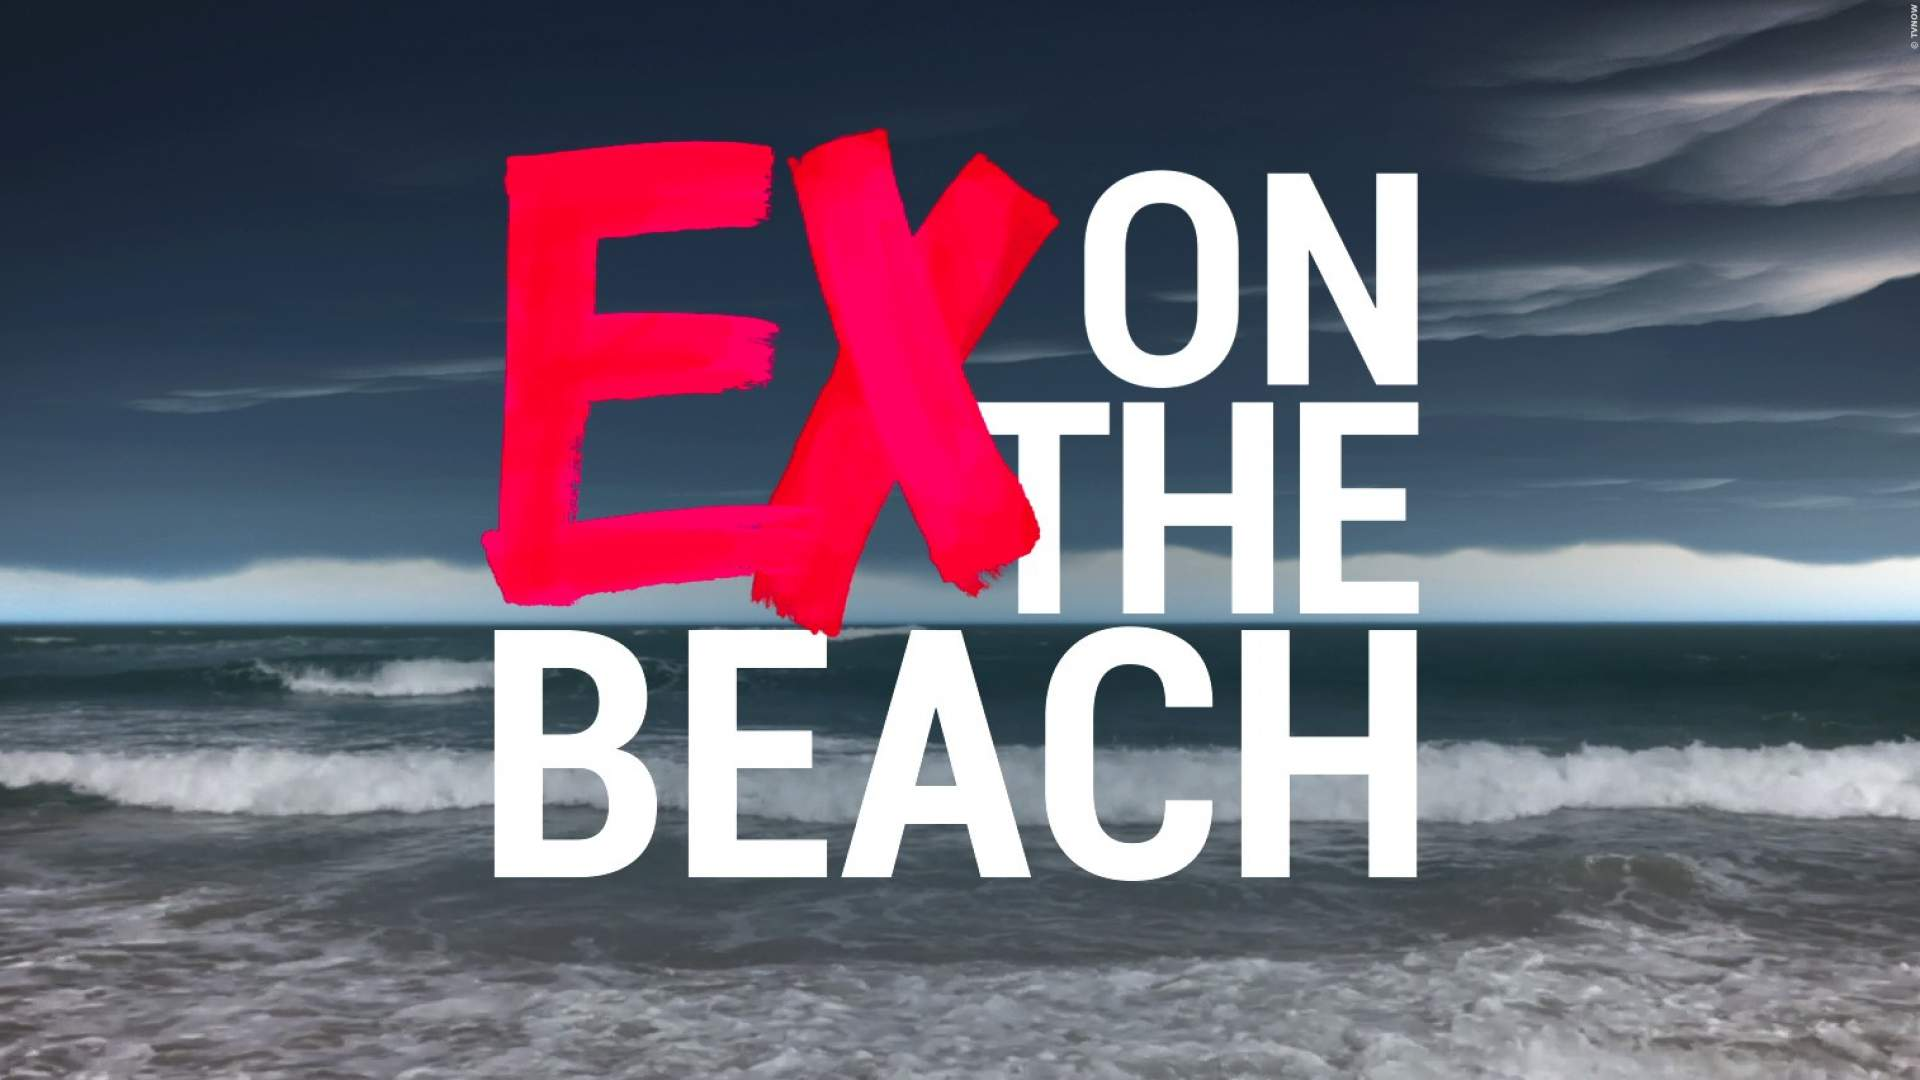 'Ex on the Beach': Neue Reality-Soap bei TVNOW